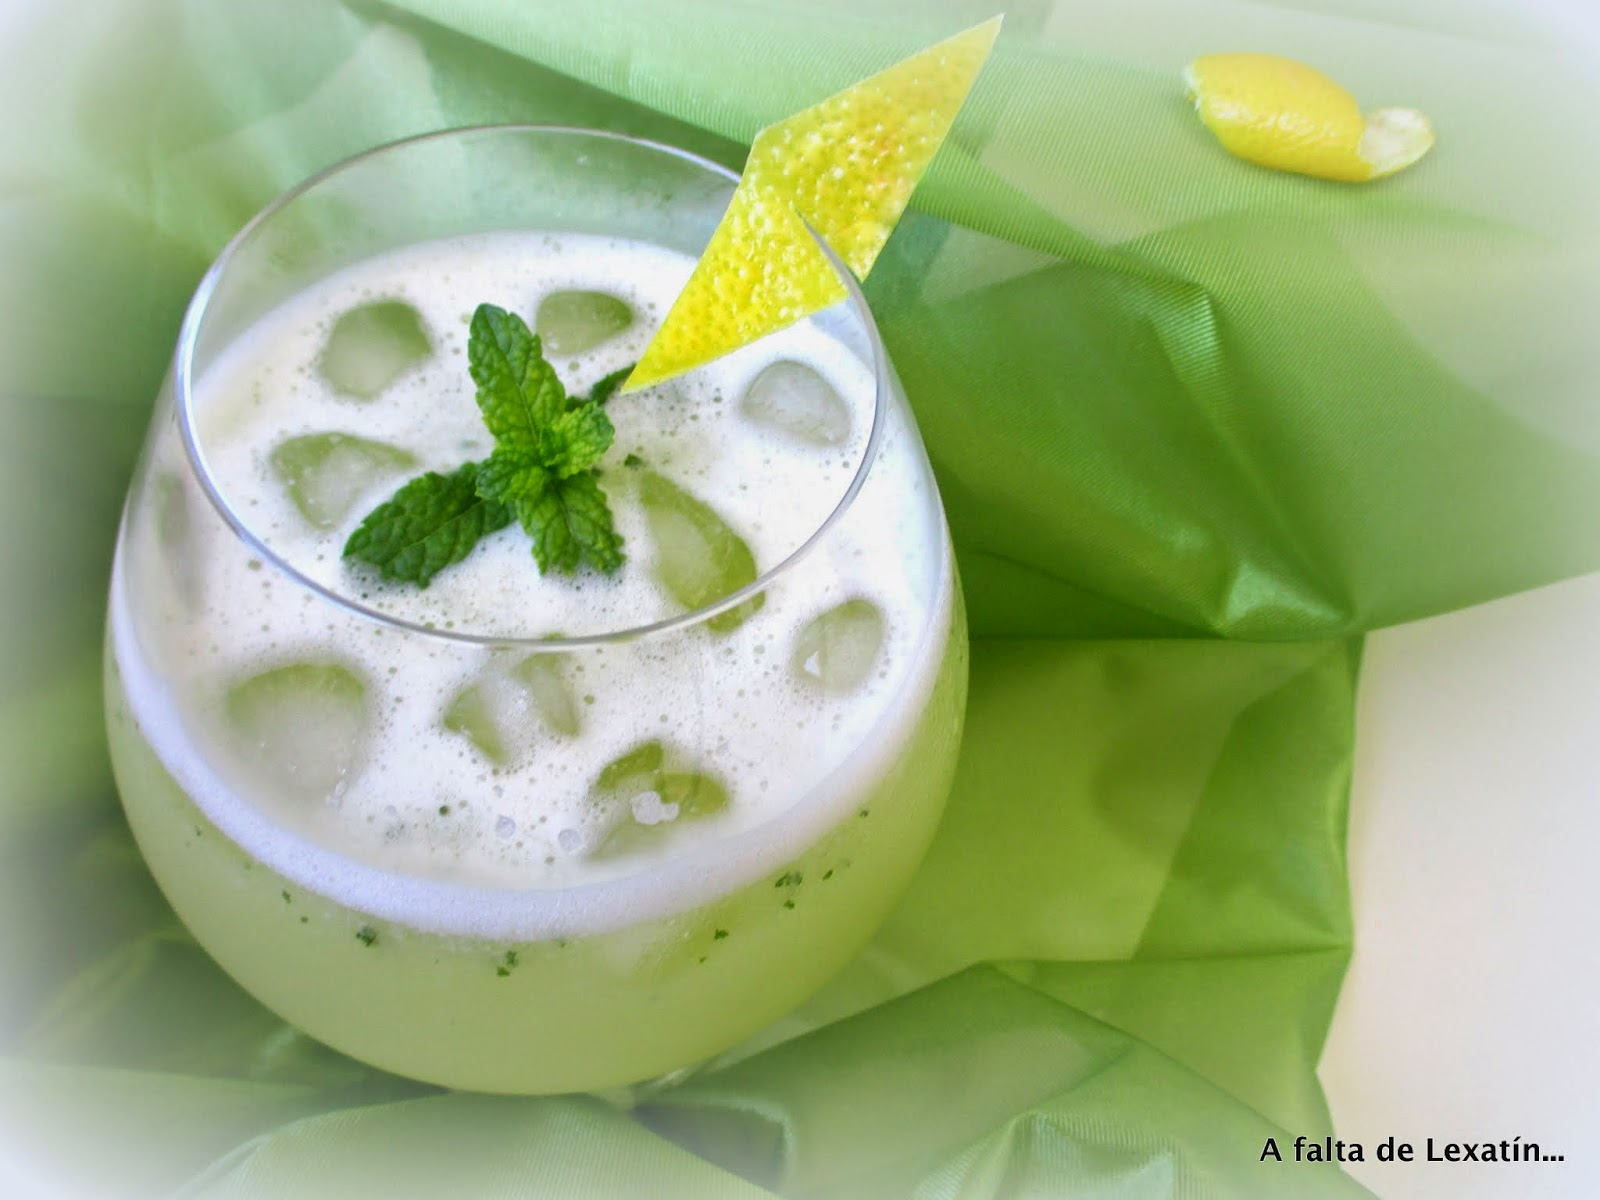 Limonada con menta . Lemon and mint juice